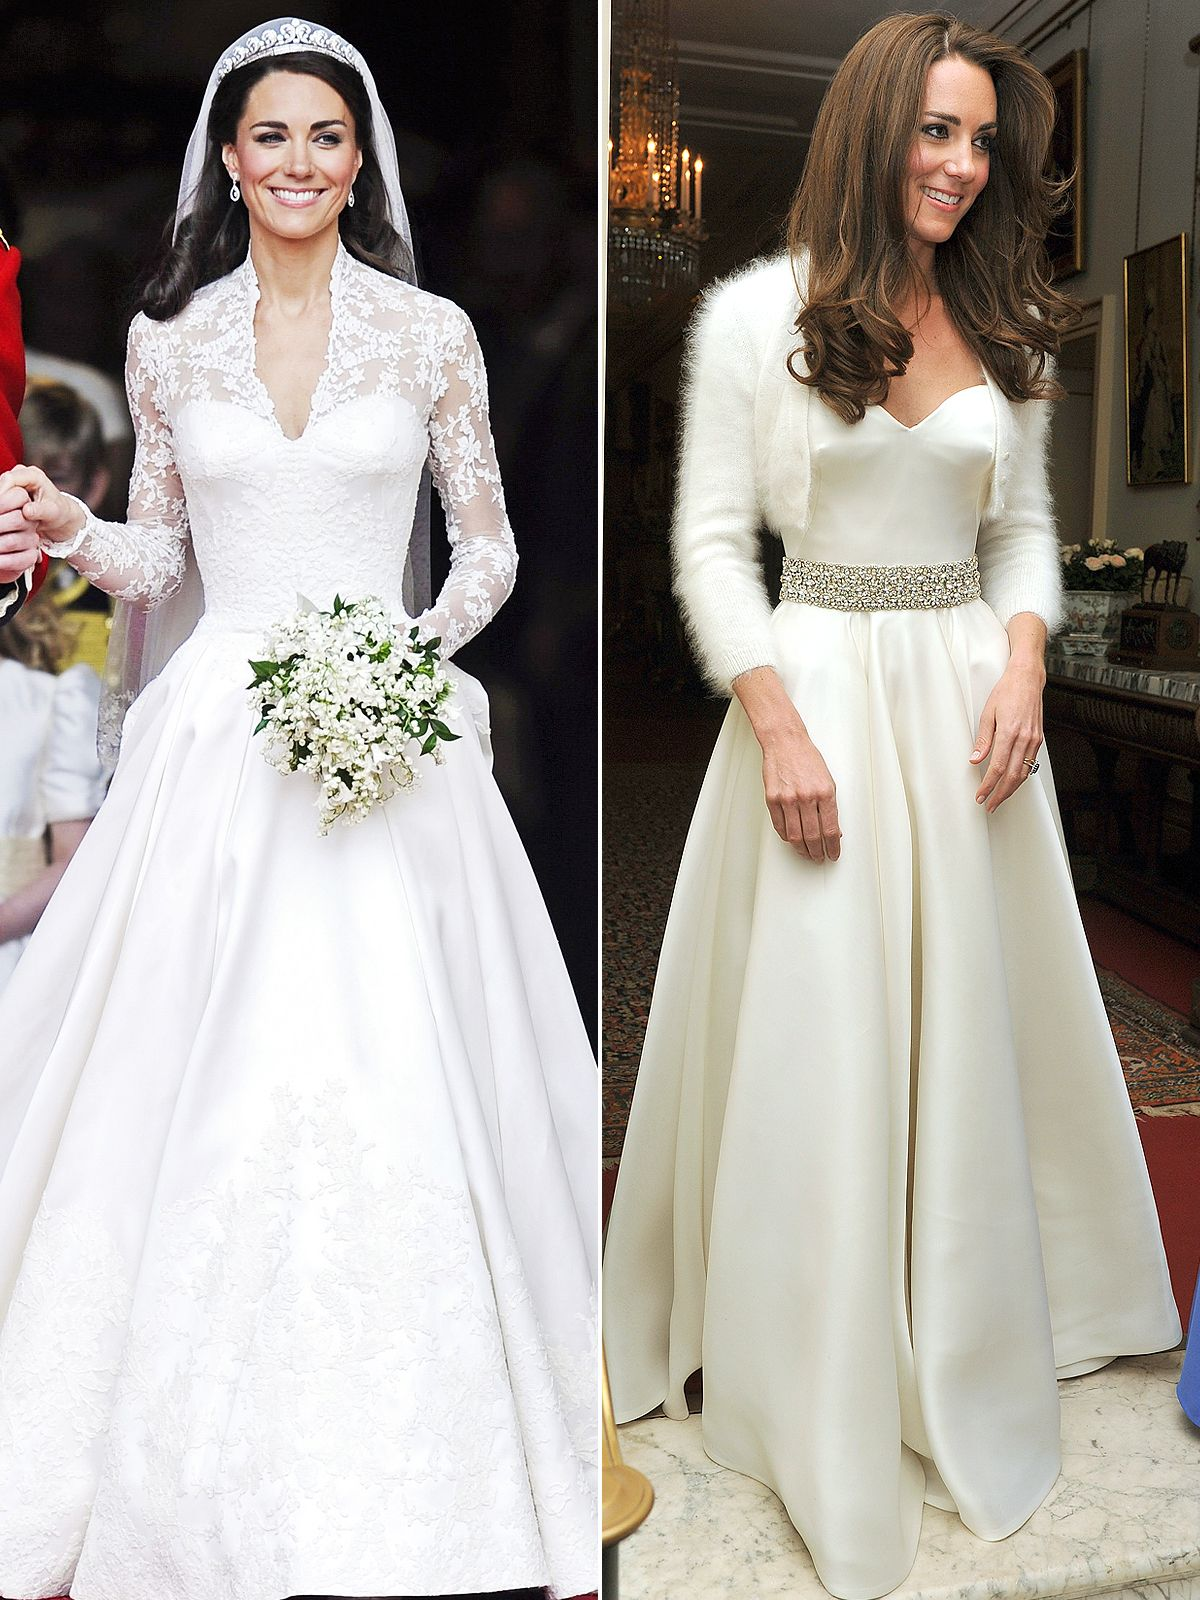 Will pippa middleton wear two wedding dresses like princess kate will pippa middleton wear two wedding dresses like princess kate junglespirit Images